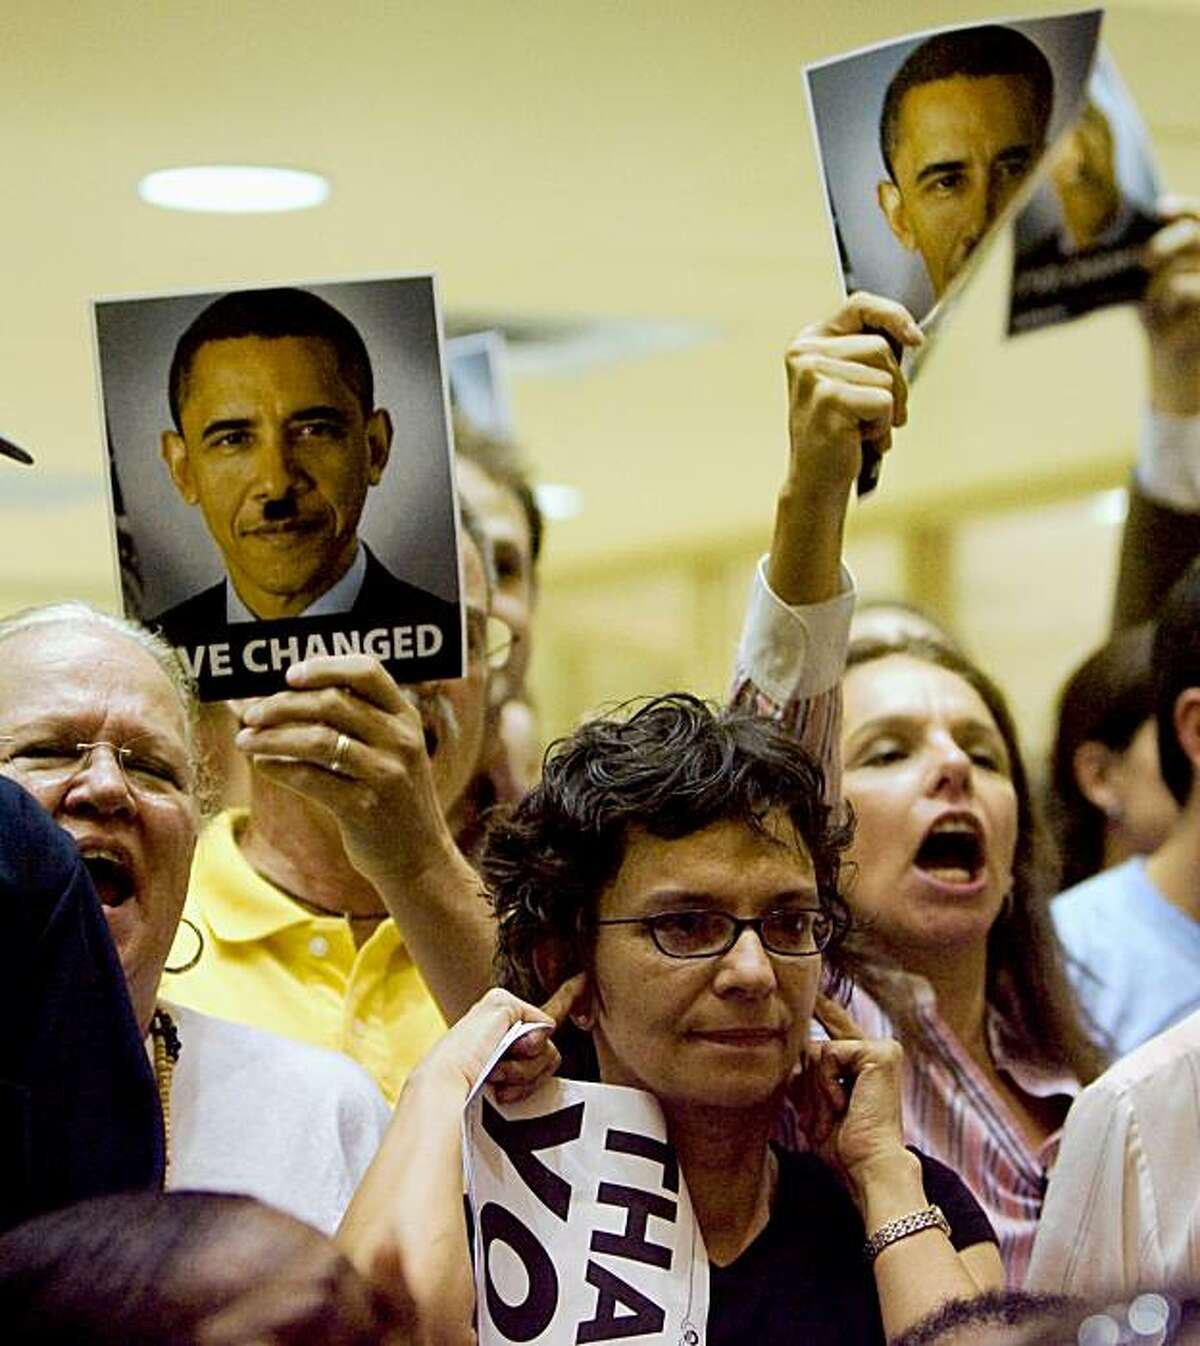 Maite Leal, center, plugs her ears as others shout during a town hall style meeting on health care reform at the Northeast Multi-Service Center in Houston, Wednesday, Aug. 12, 2009. (AP Photo/Houston Chronicle, Billy Smith II)